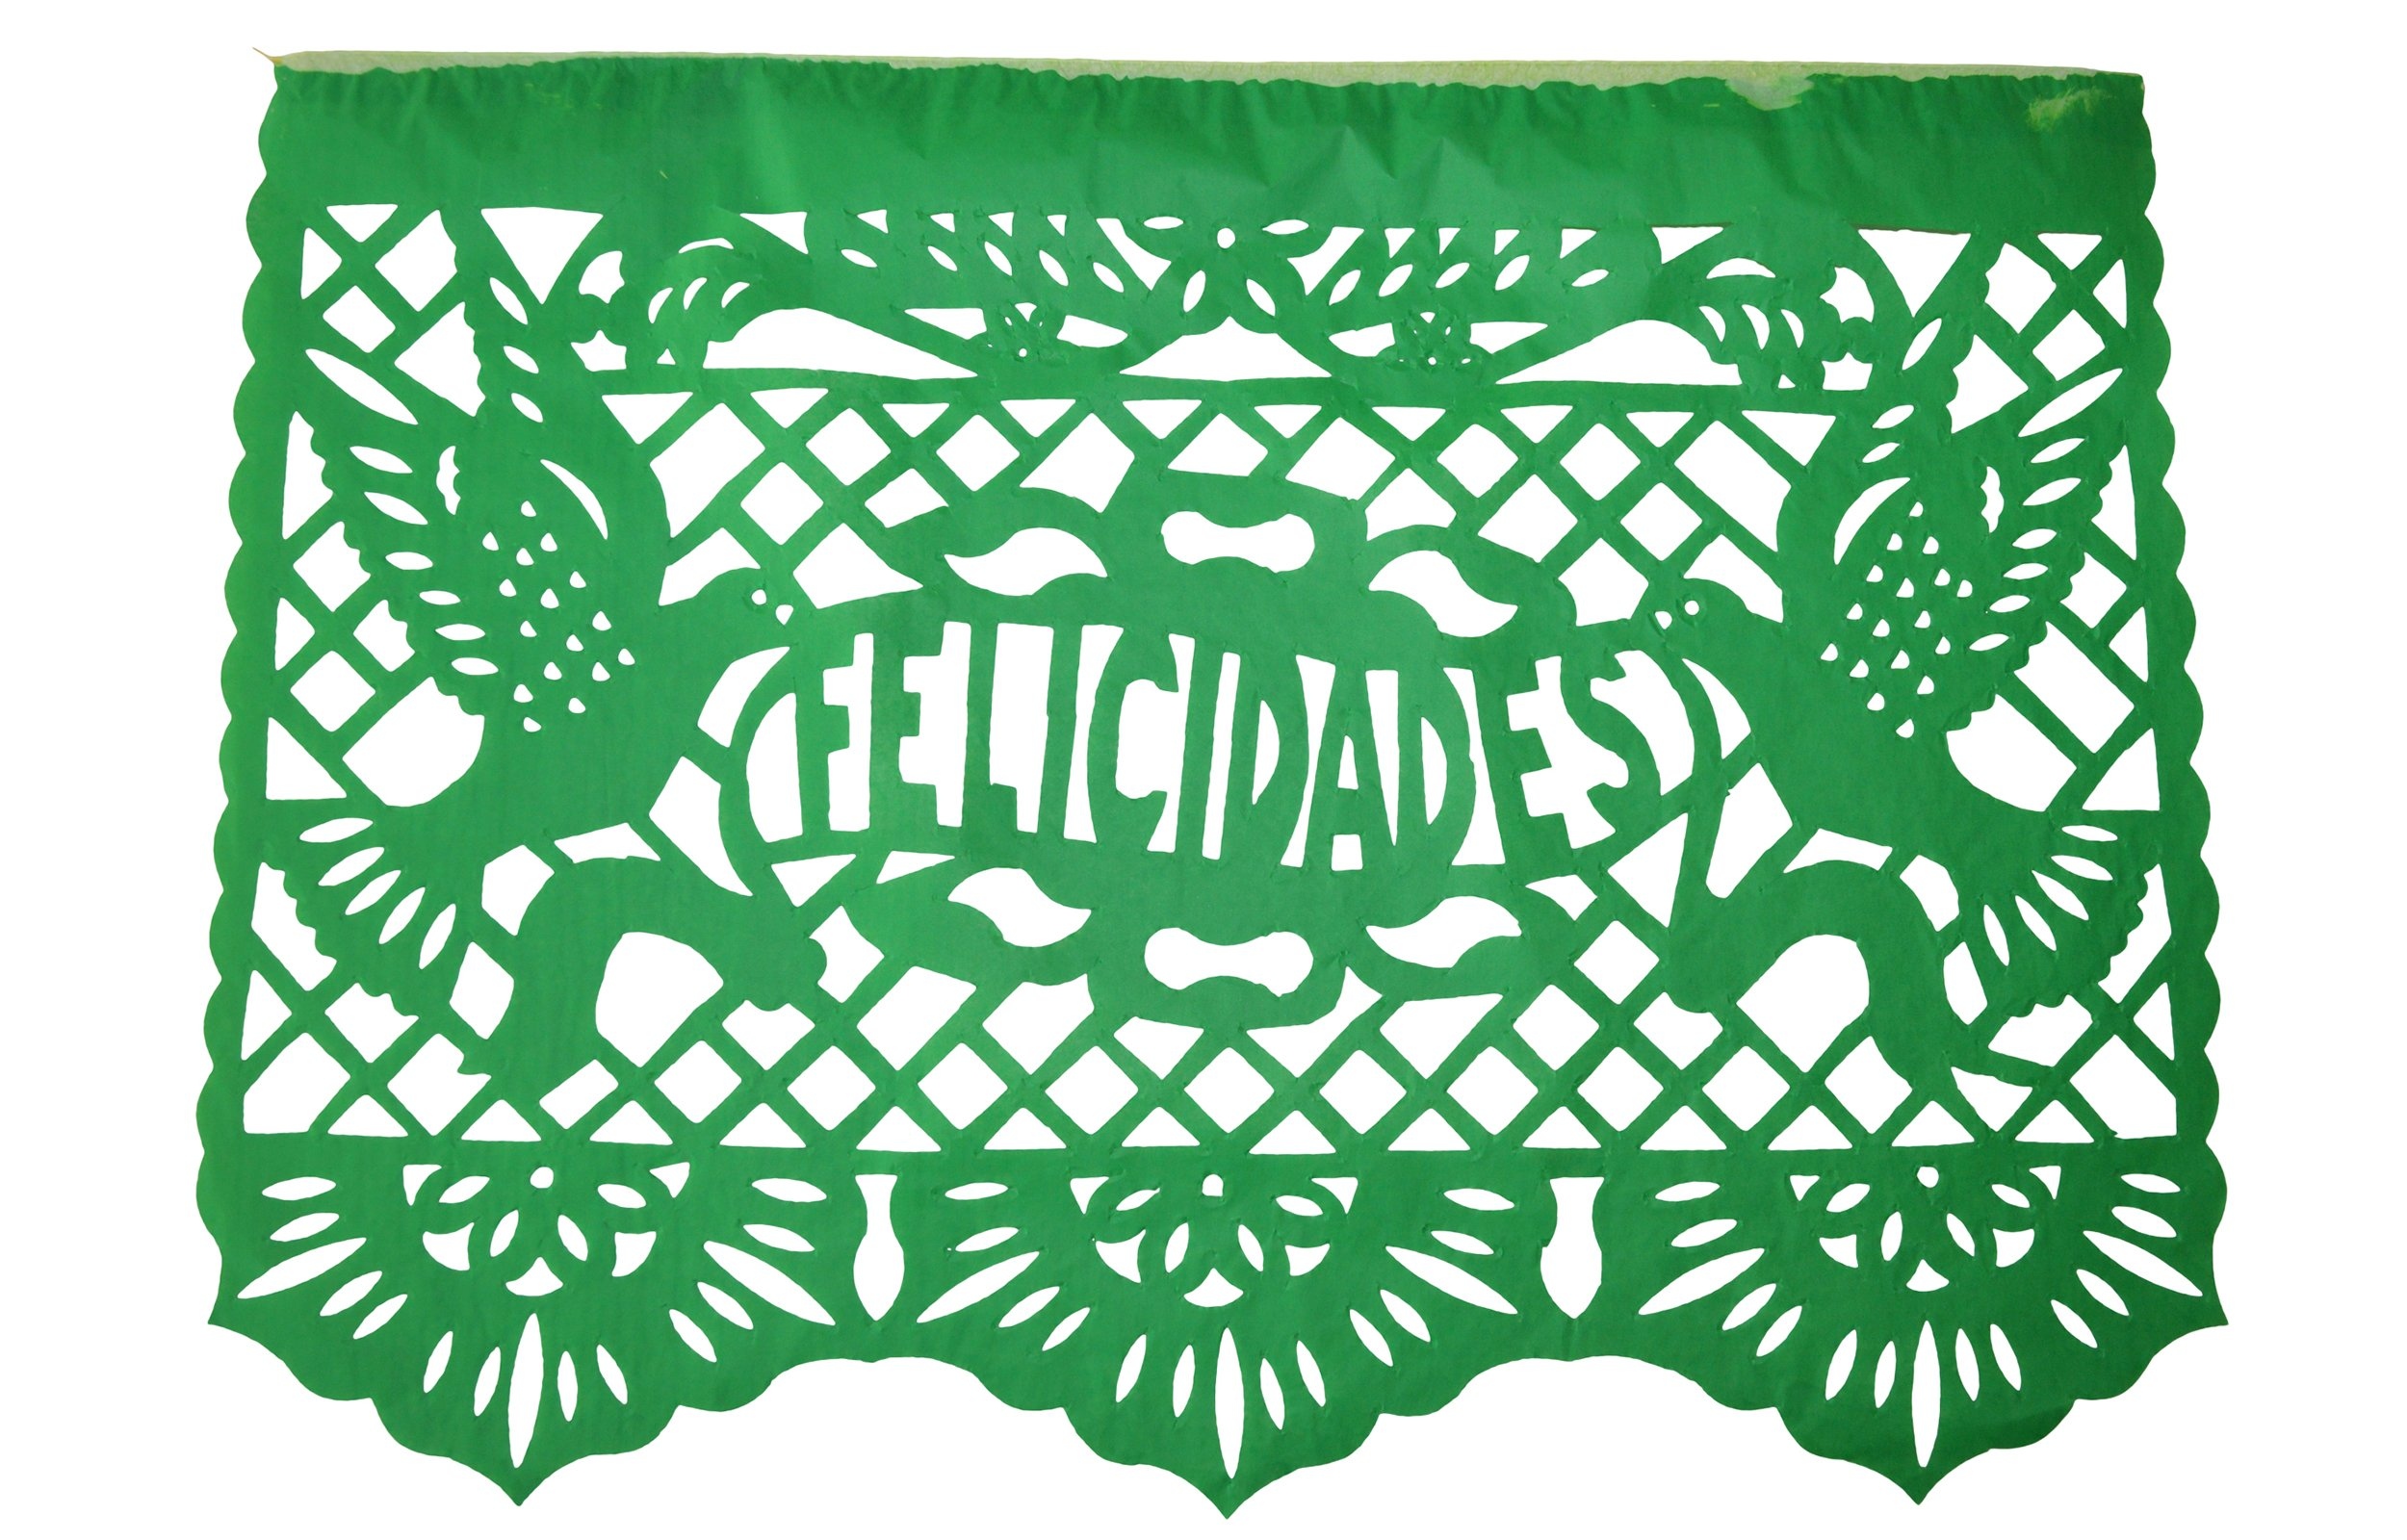 FELICIDADES Mexican Papel Picado Banner - Colorful Tissue Paper Coco Movie - 18 PANELS 33 feet long Mexican Fiesta Party Birthday Festive Celebrations Weedings- Handmade (33 feet)